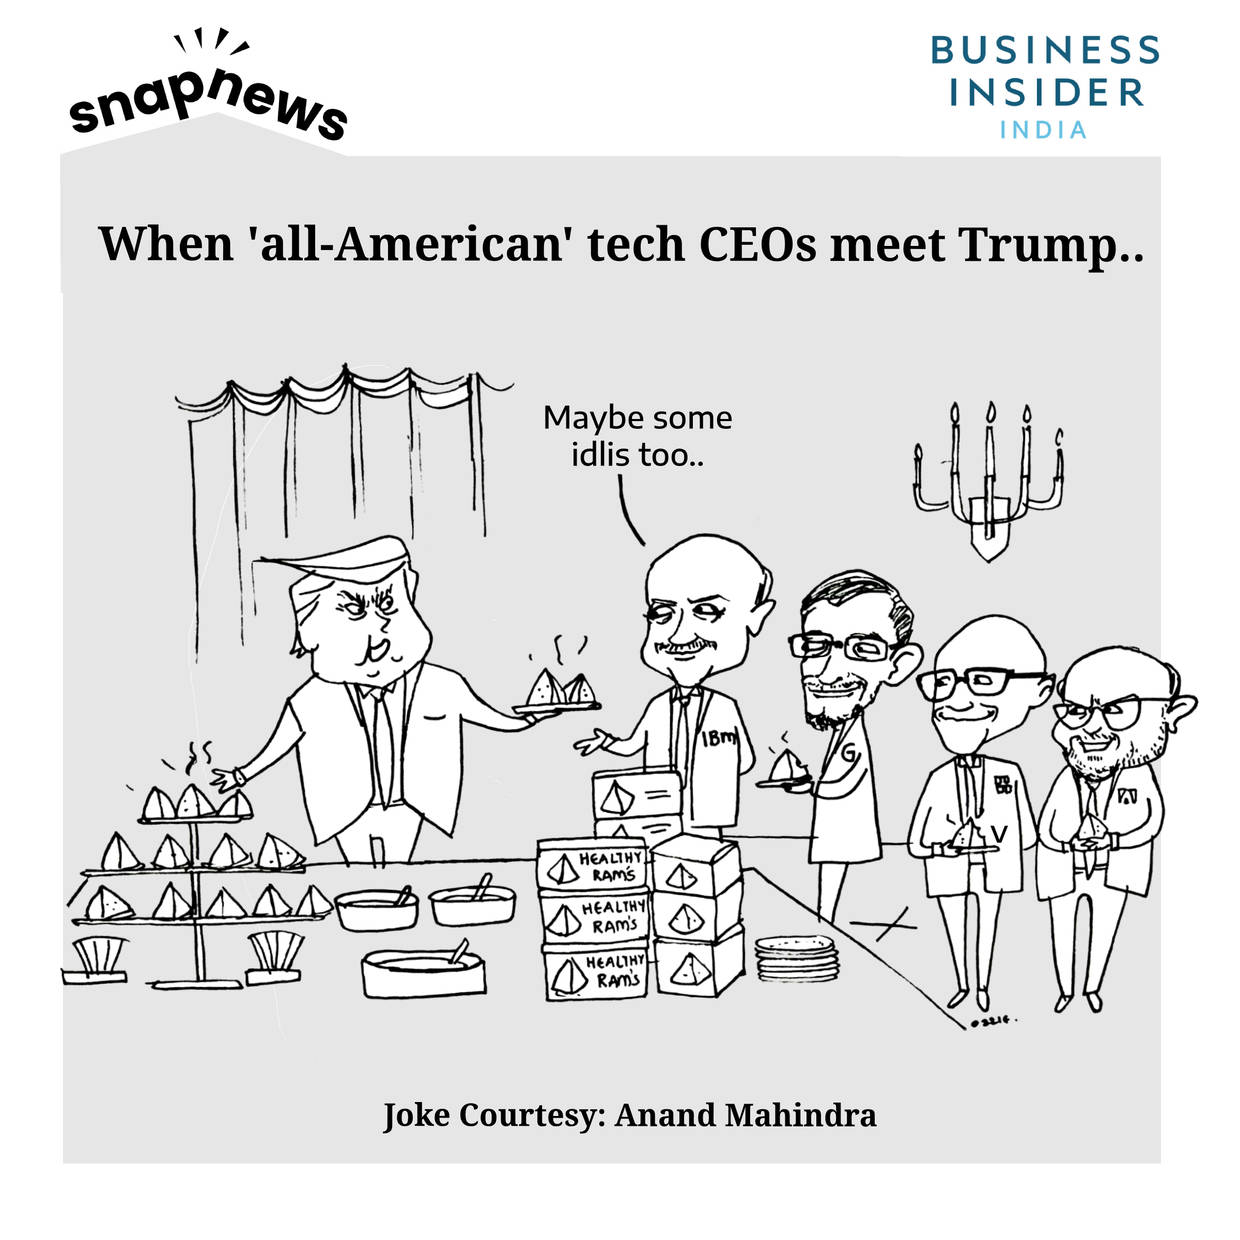 Donald Trump may have to order samosas next time he meets all-American tech CEOs, quips Anand Mahindra